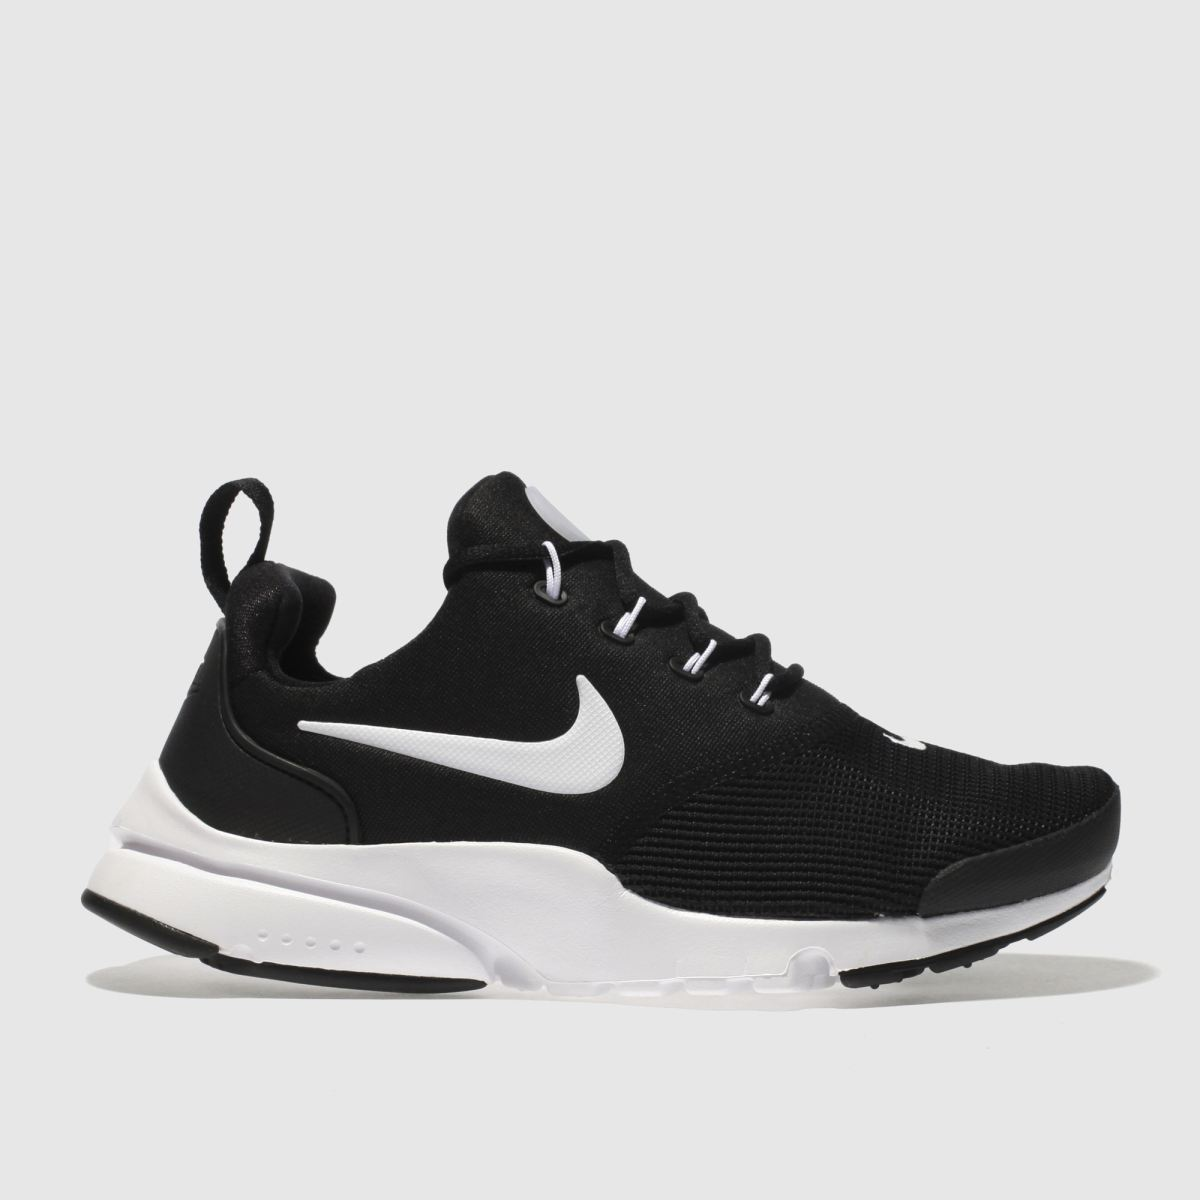 Nike Black & White Presto Fly Youth Trainers